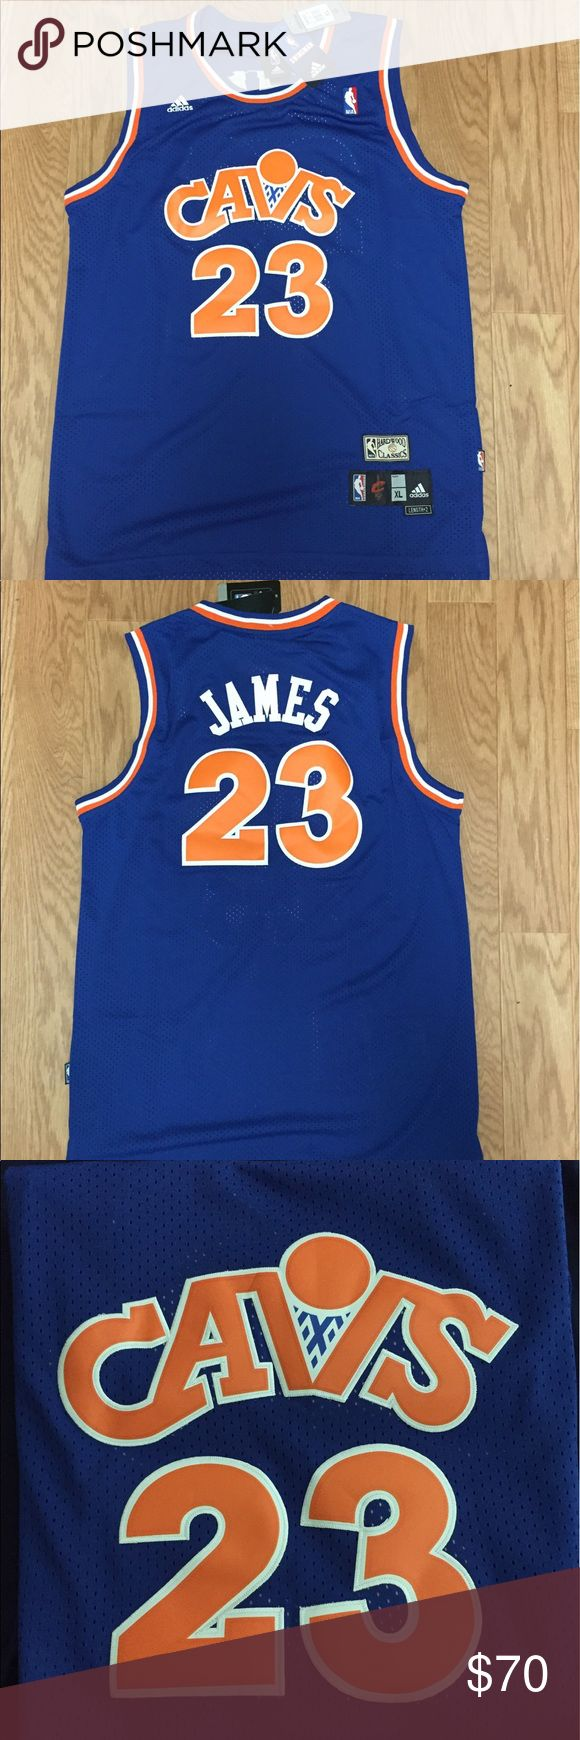 XL Lebron James throwback Cavaliers NBA jersey This is a Lebron James Cavaliers jersey with the throwback uniforms worn on the road from 87-89 season and re introduced in the 2008-2009 season. Very rare Cavs find. Excellent for Father's Day. Contact me with questions and thanks for your time adidas Other